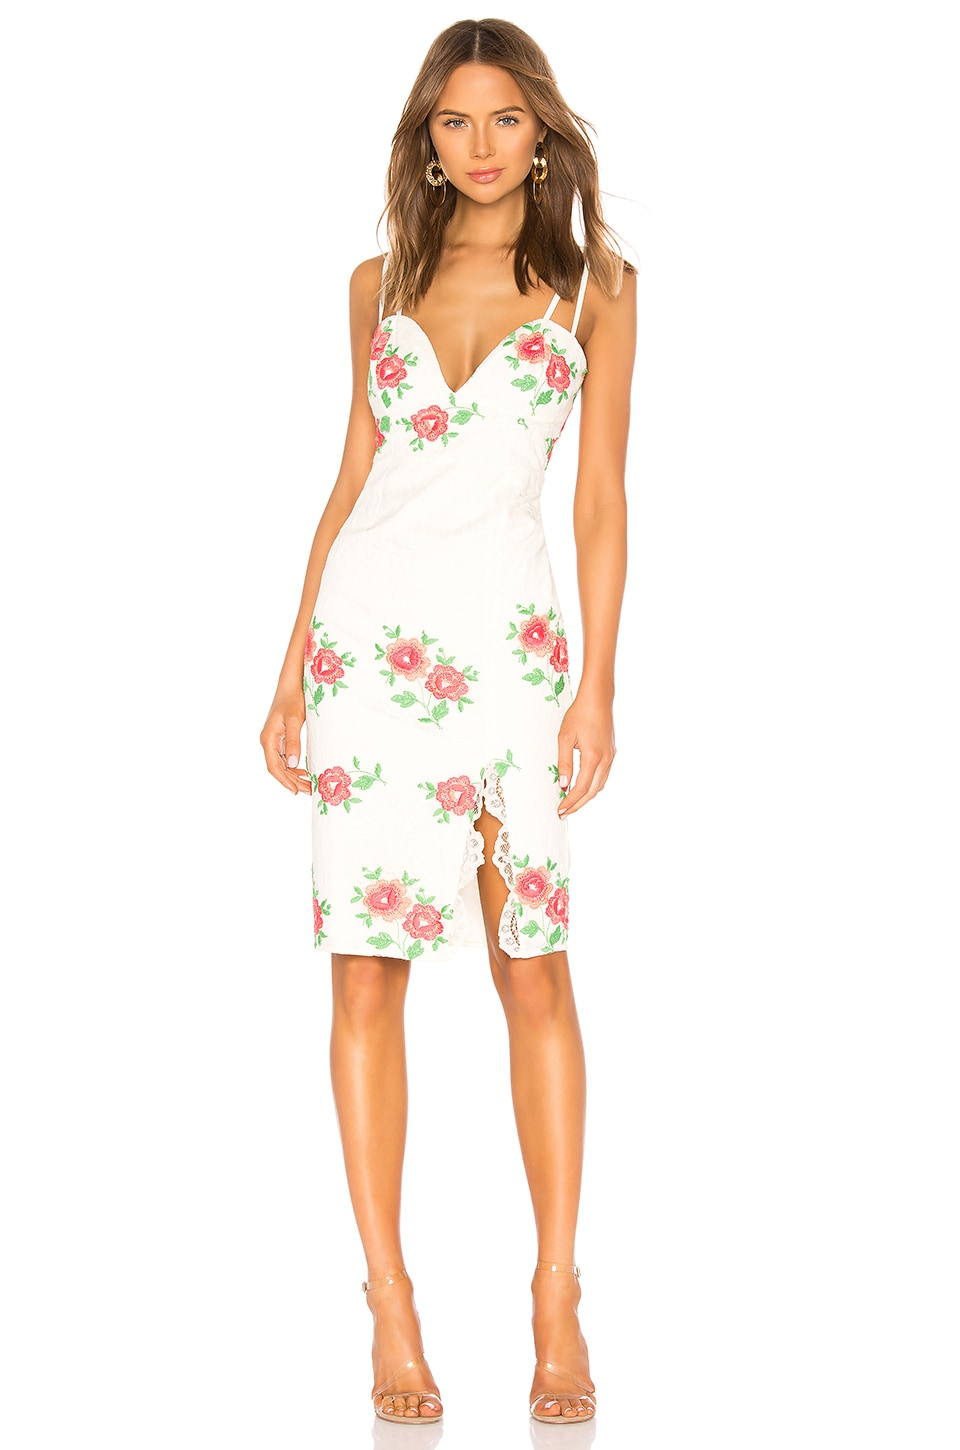 X BY NBD Trey Midi Dress in White